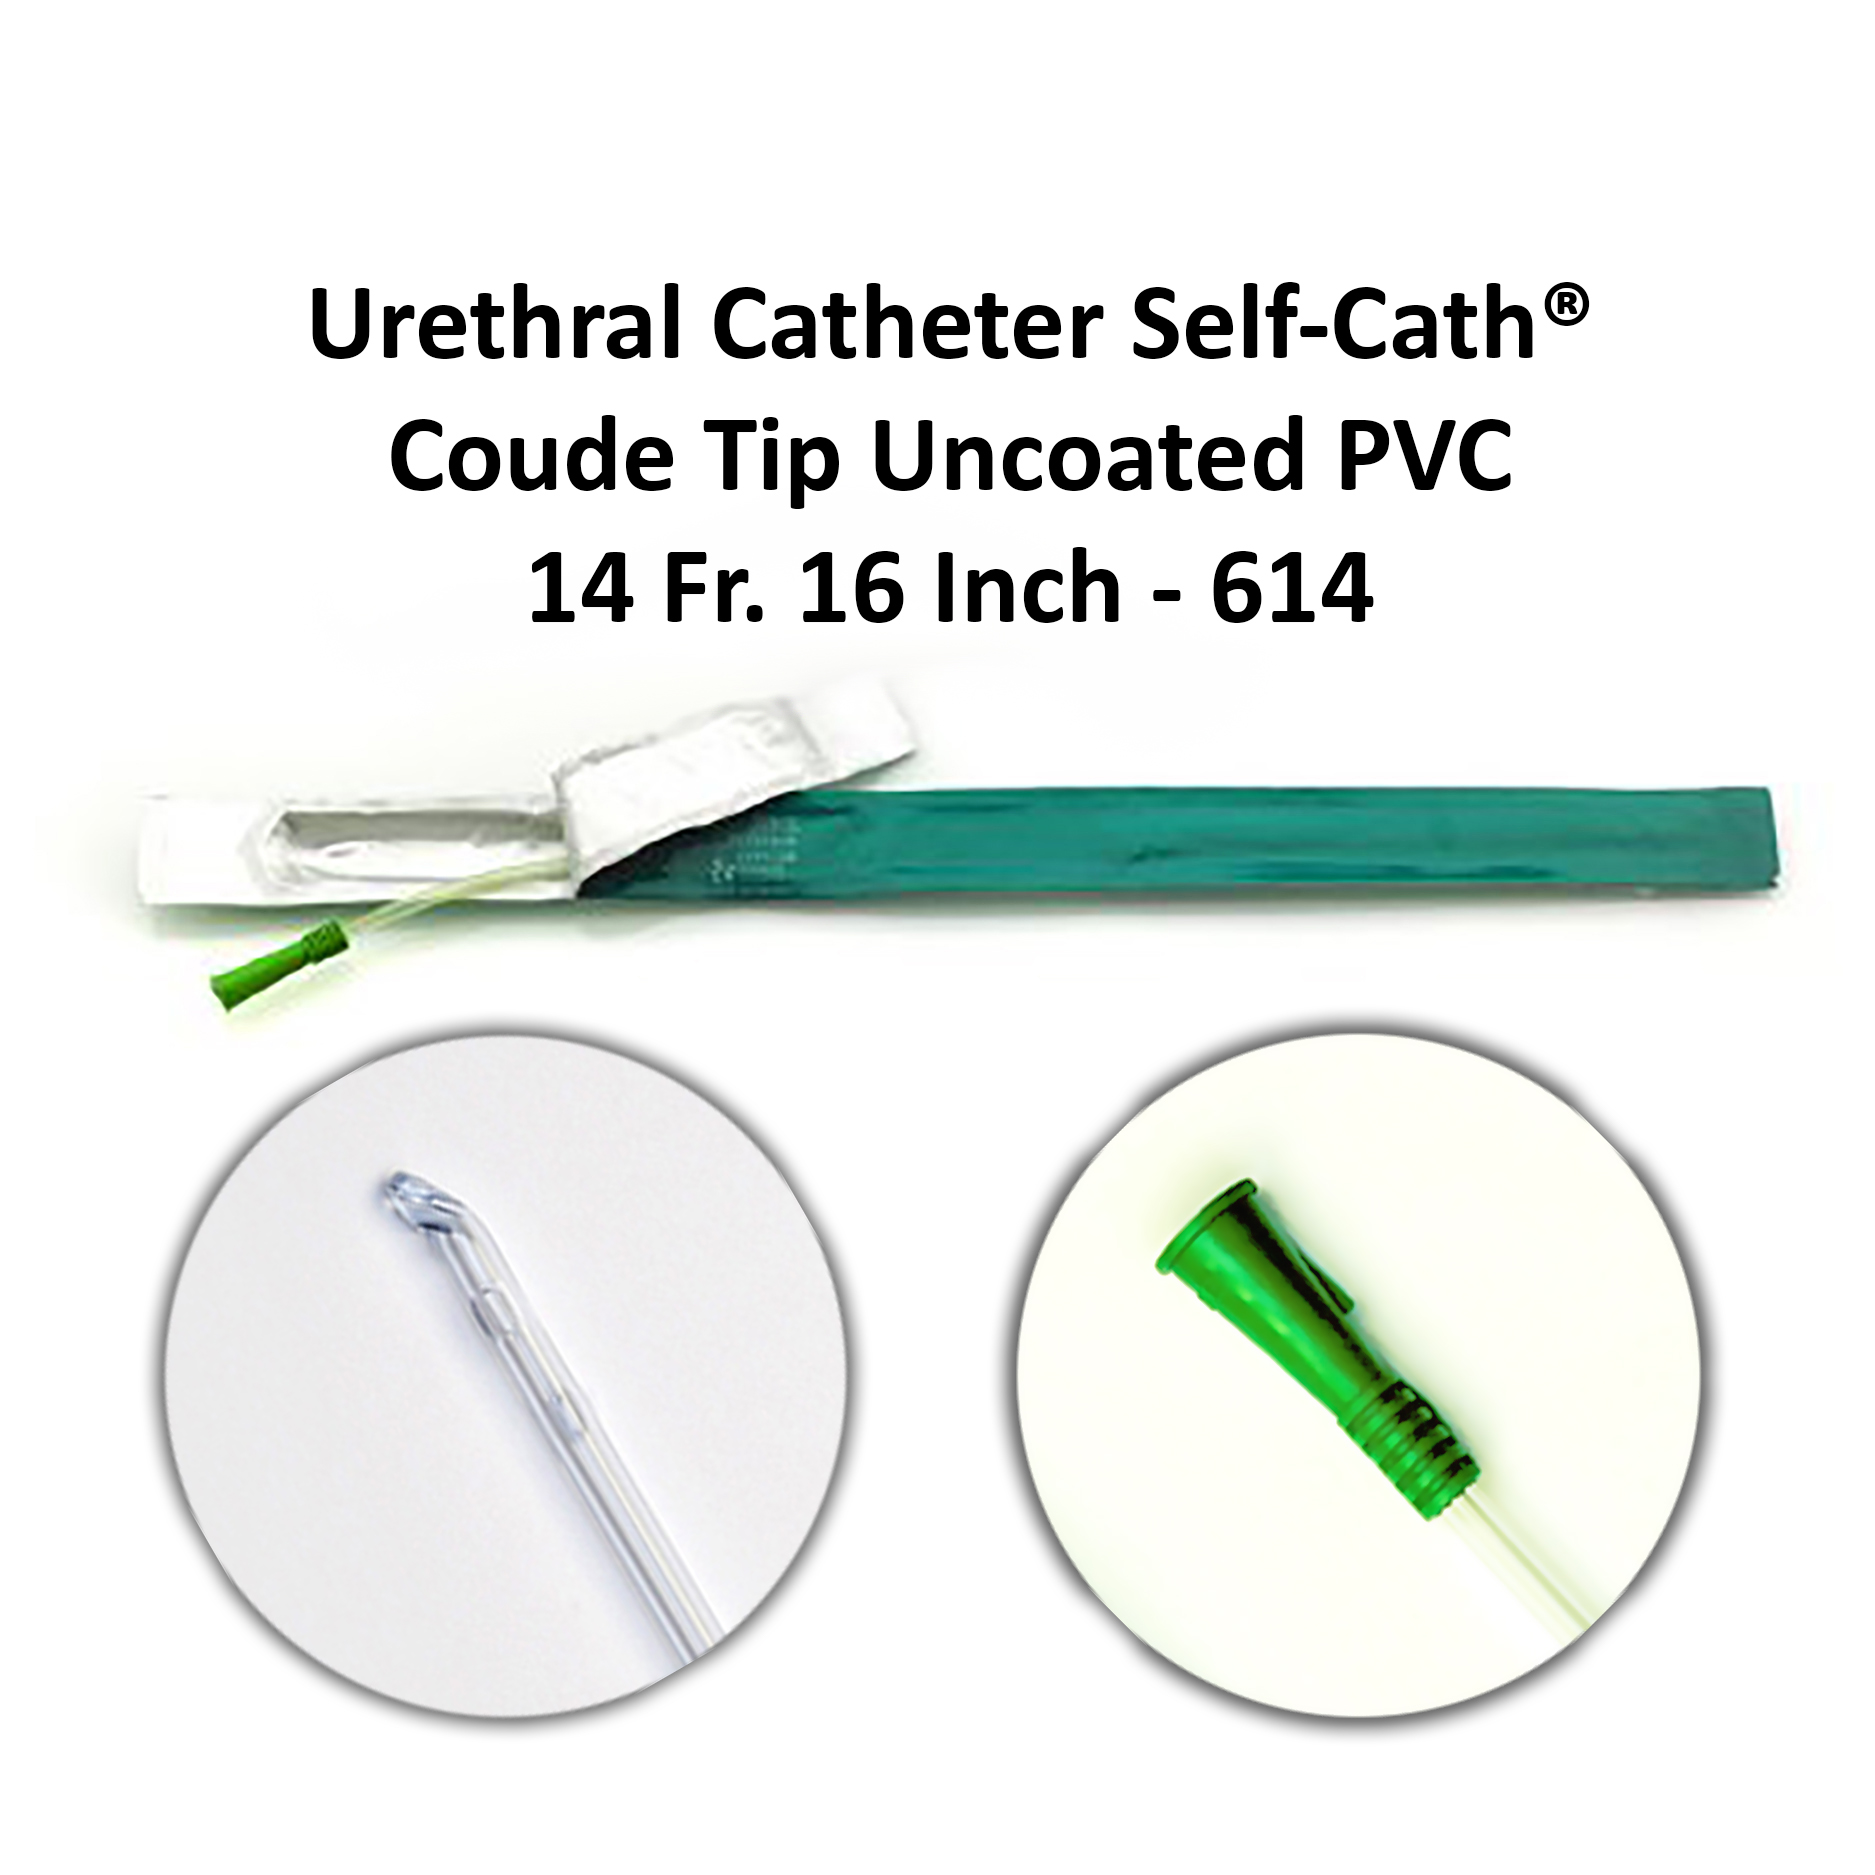 Urethral Catheter Self-Cath® Coude Tip Uncoated PVC 14 Fr. 16 Inch - 614